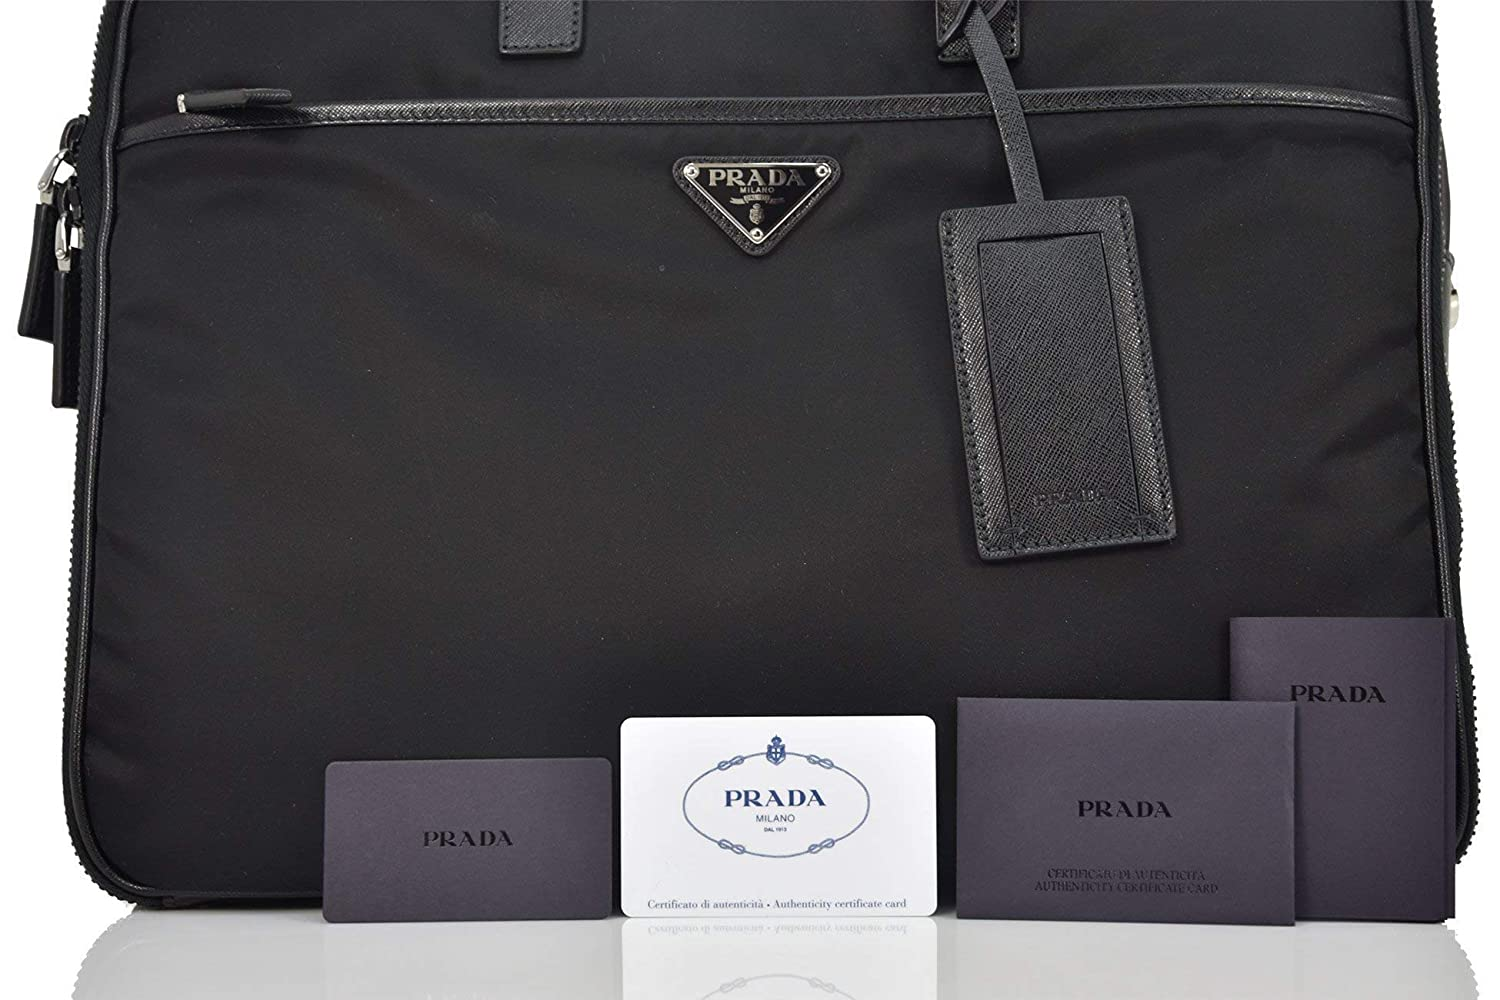 335bf52e0f6a Prada briefcase attaché case laptop pc bag Nylon saffiano black  Amazon.co. uk  Shoes   Bags